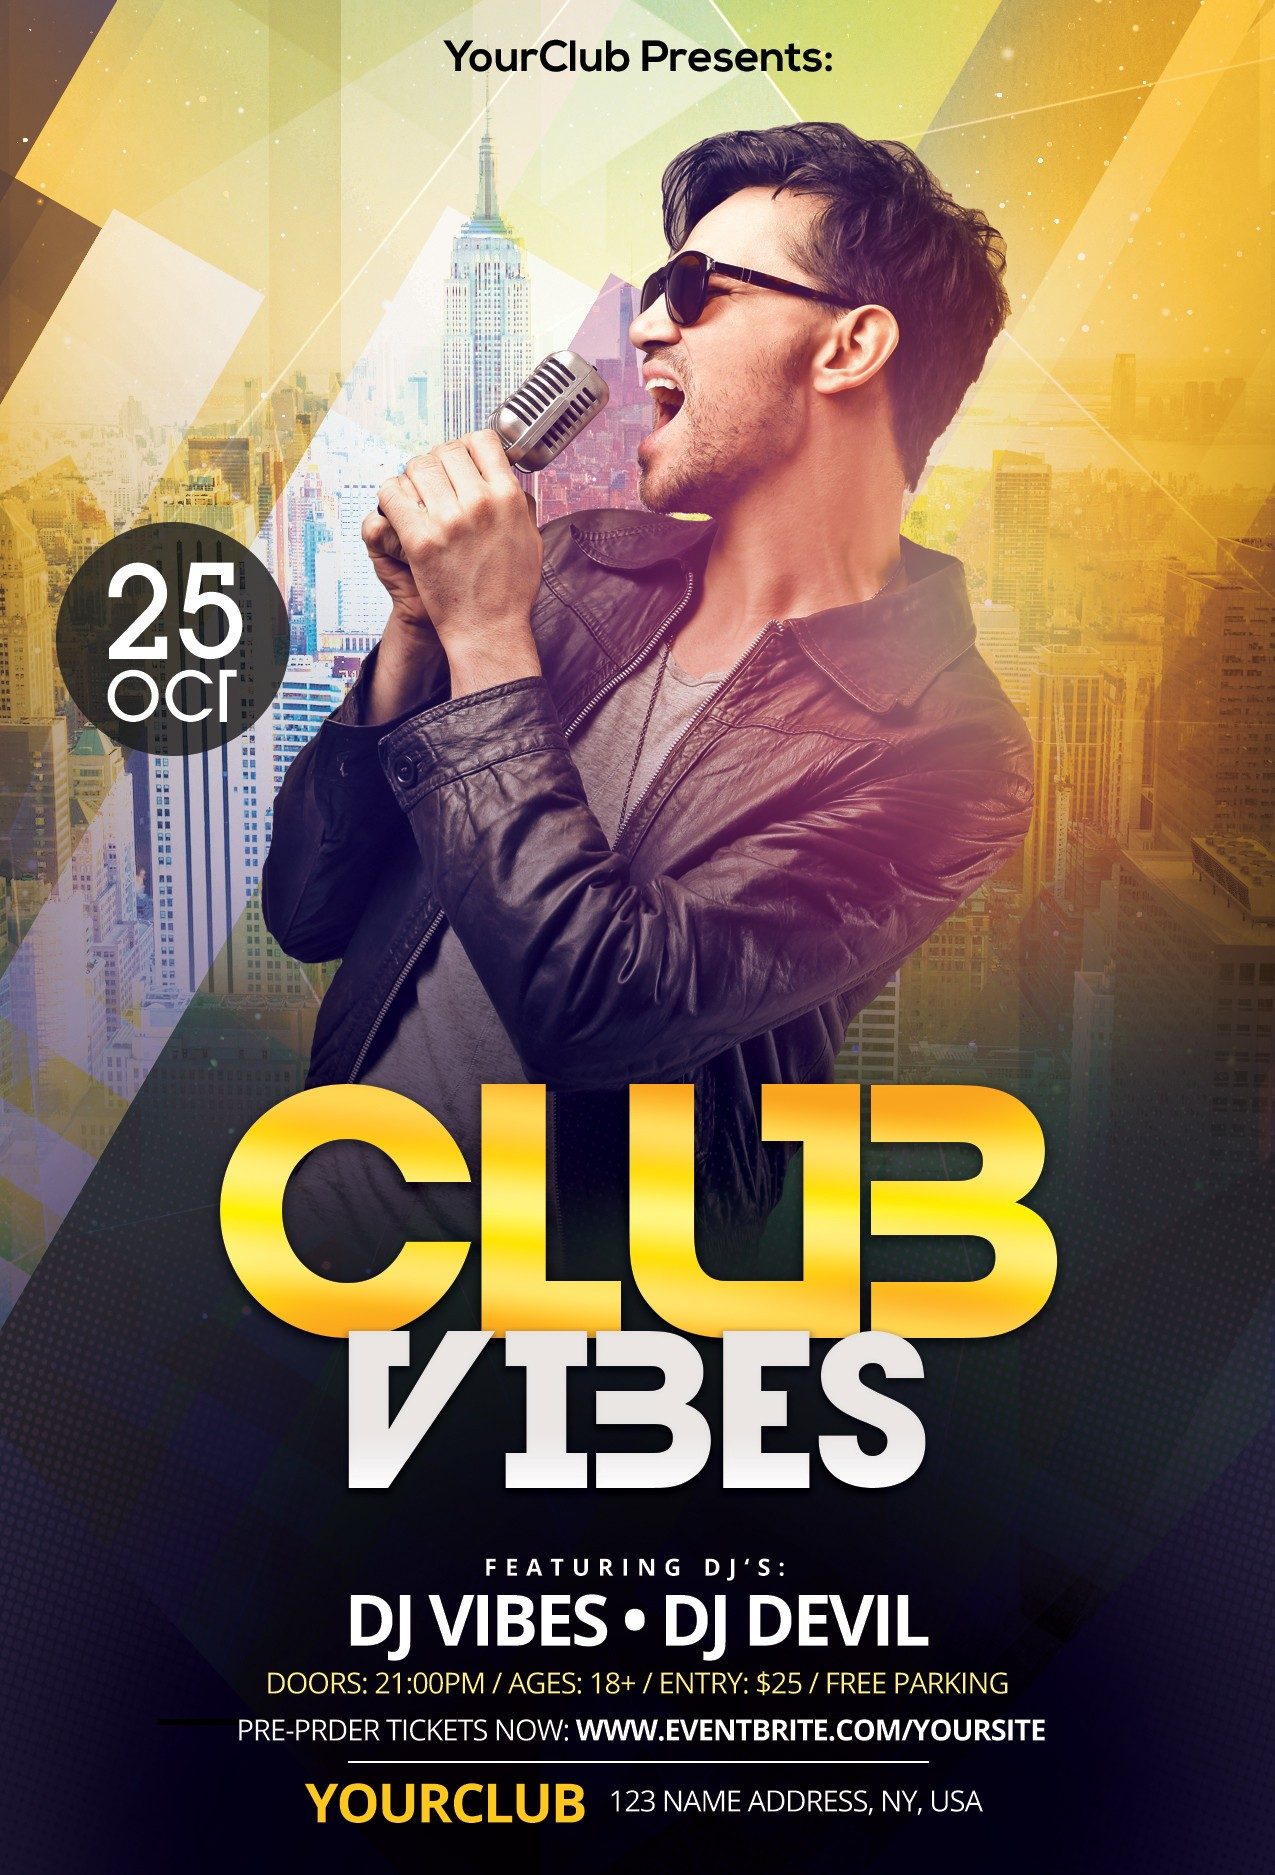 club vibes is free psd photoshop flyer template to download this free psd flyer is fully editable and very easy to edit and customize - Free Psd Flyer Templates